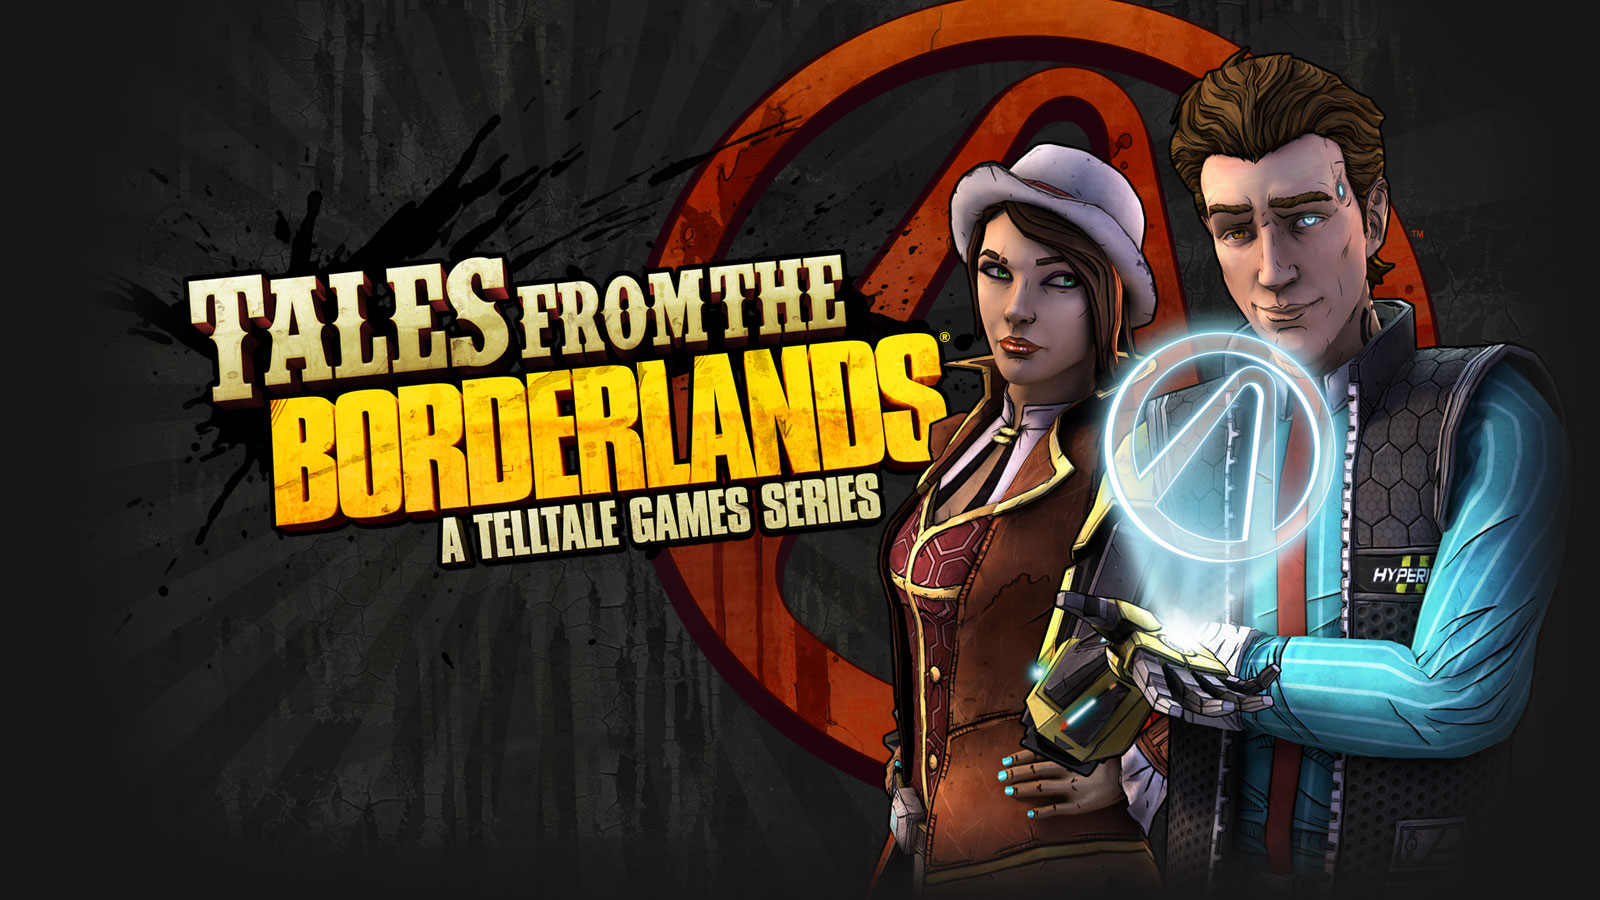 Chalgyr's Game Room: Tales from the Borderlands: A Telltale